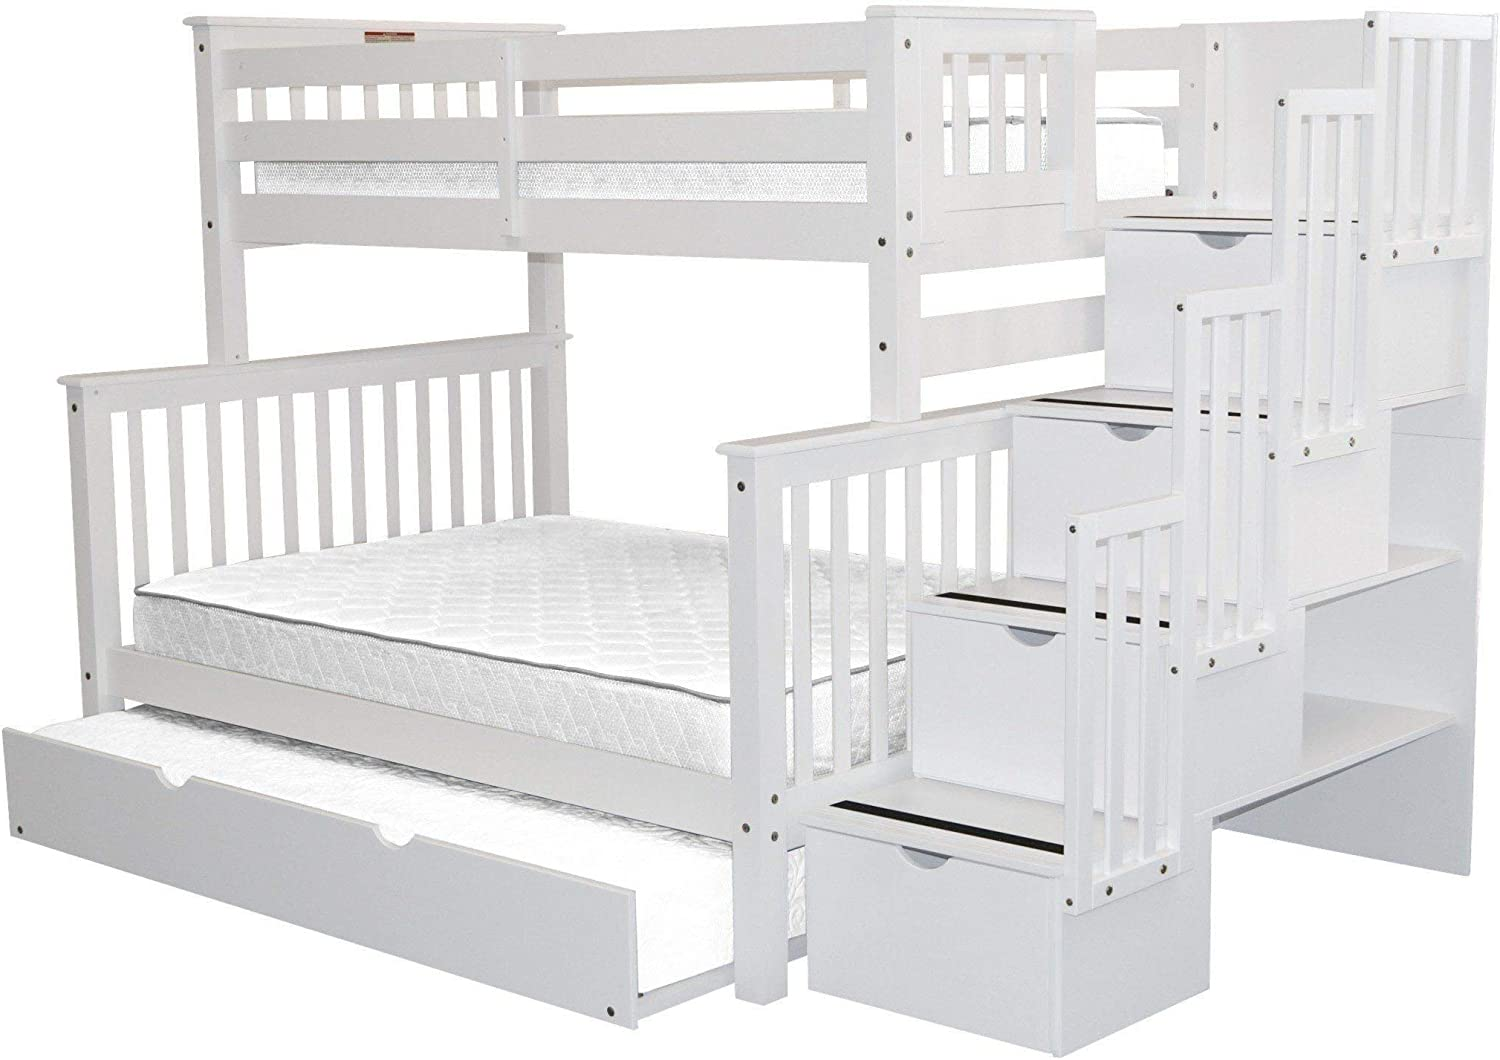 Bedz King Stairway Bunk Beds Twin Over Full With 4 Drawers In The Steps And A Twin Trundle White Furniture Home Tenerife Direct Com